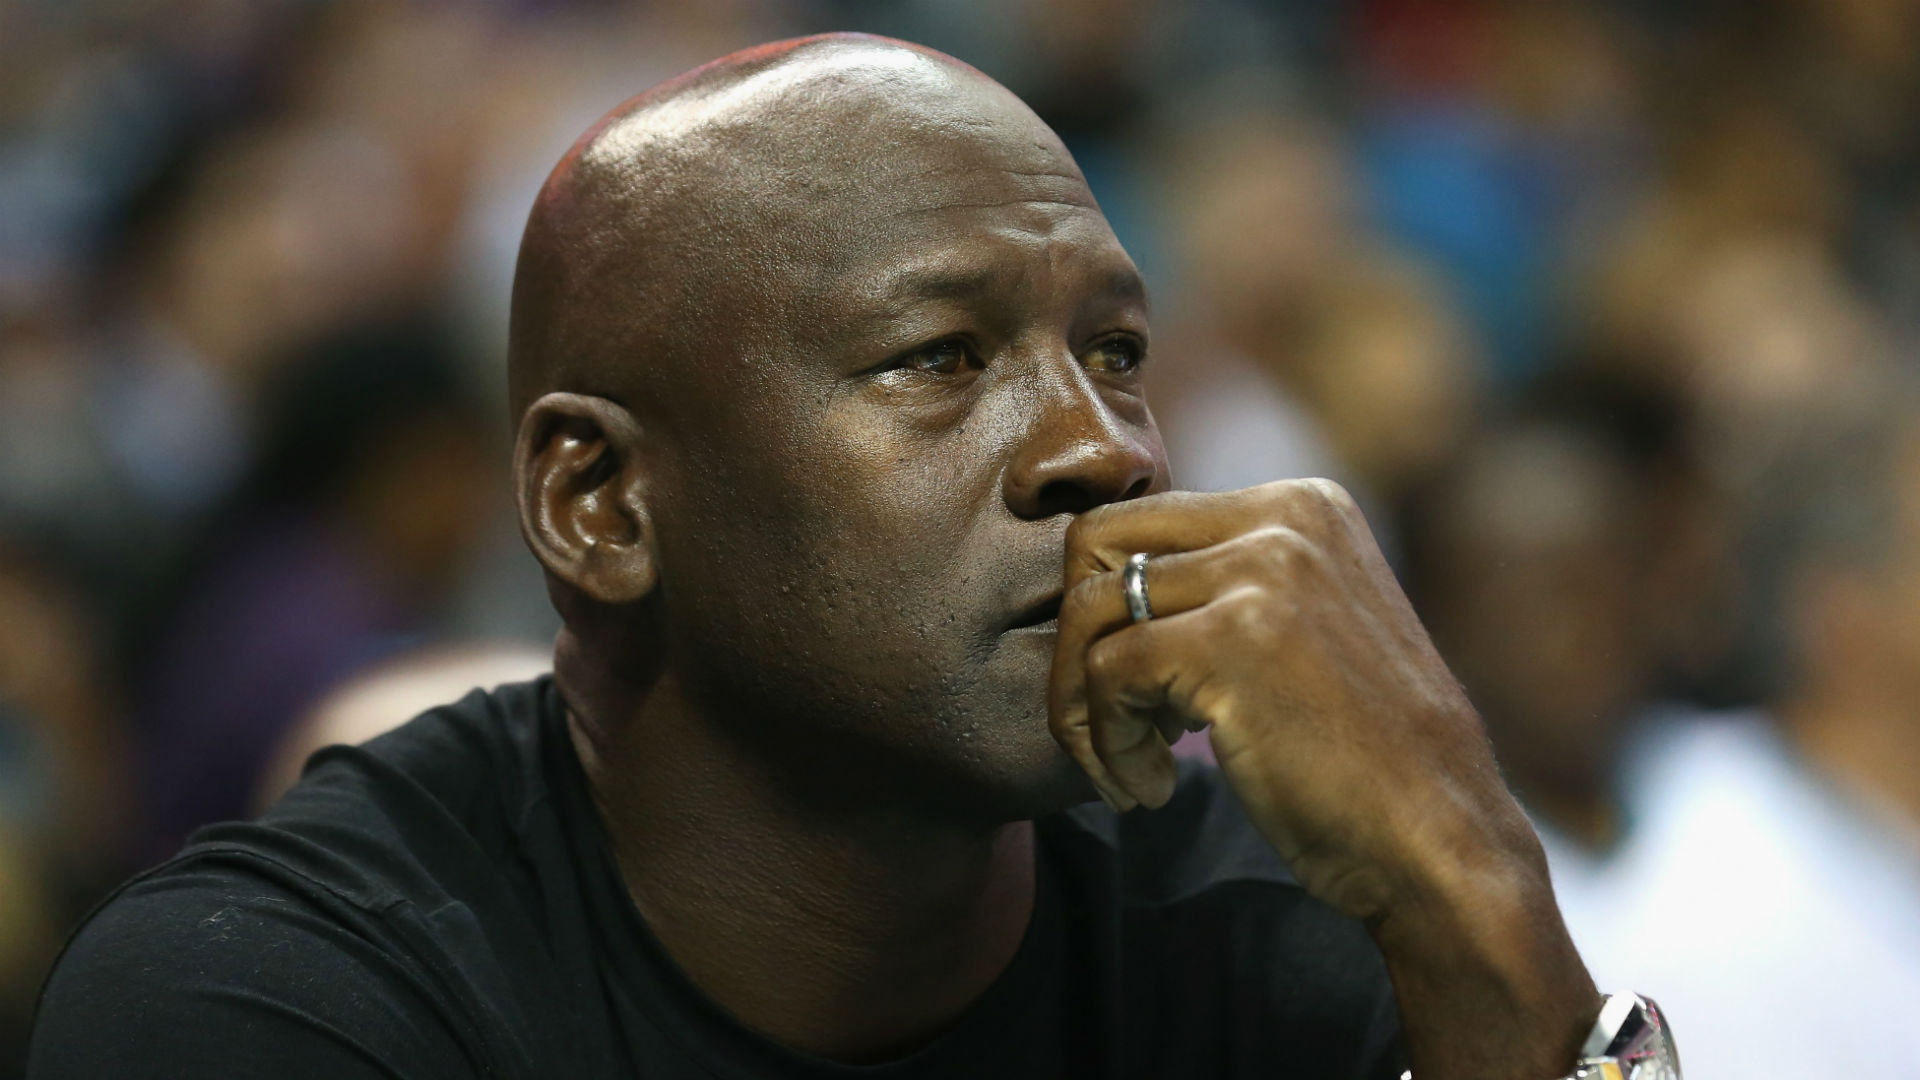 """NBA legend Michael Jordan described himself as """"deeply saddened, pained and plain angry"""" over the death of George Floyd."""